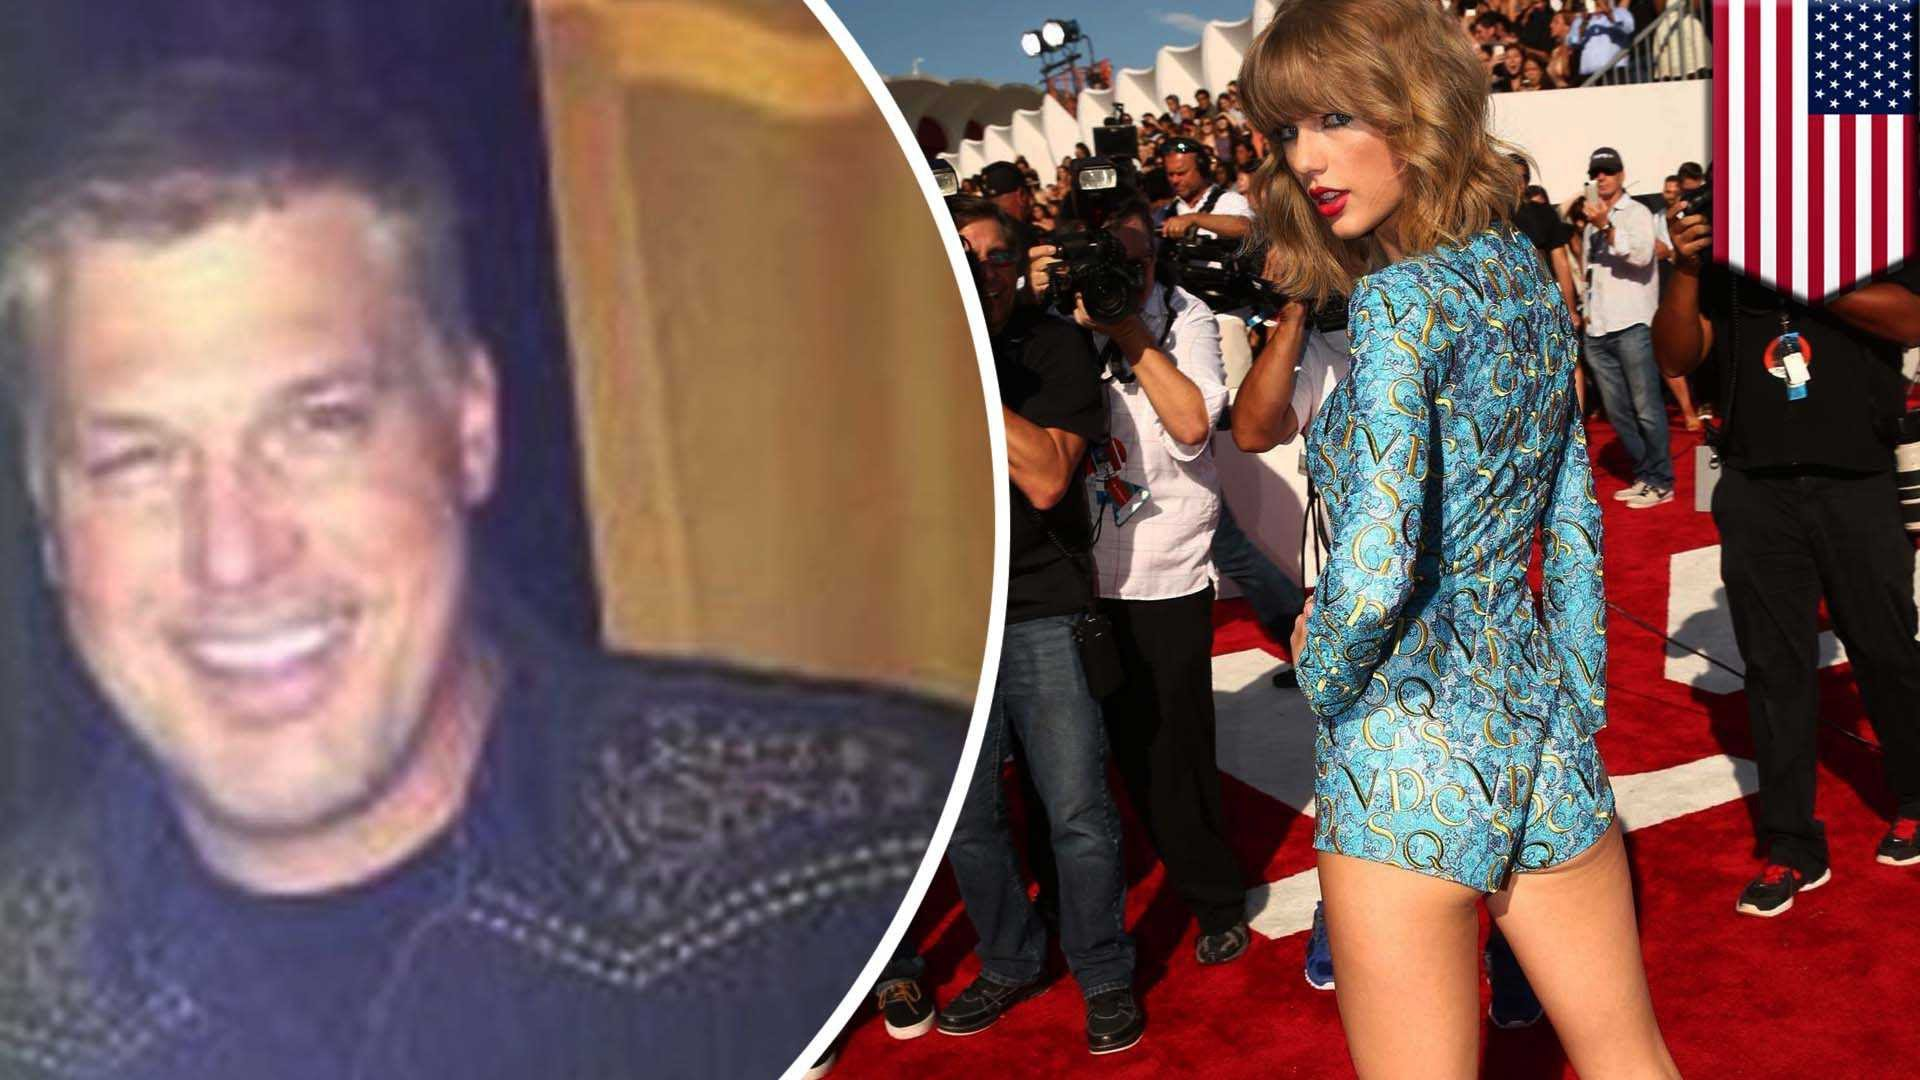 taylor swift david mueller groping trial sexual assault